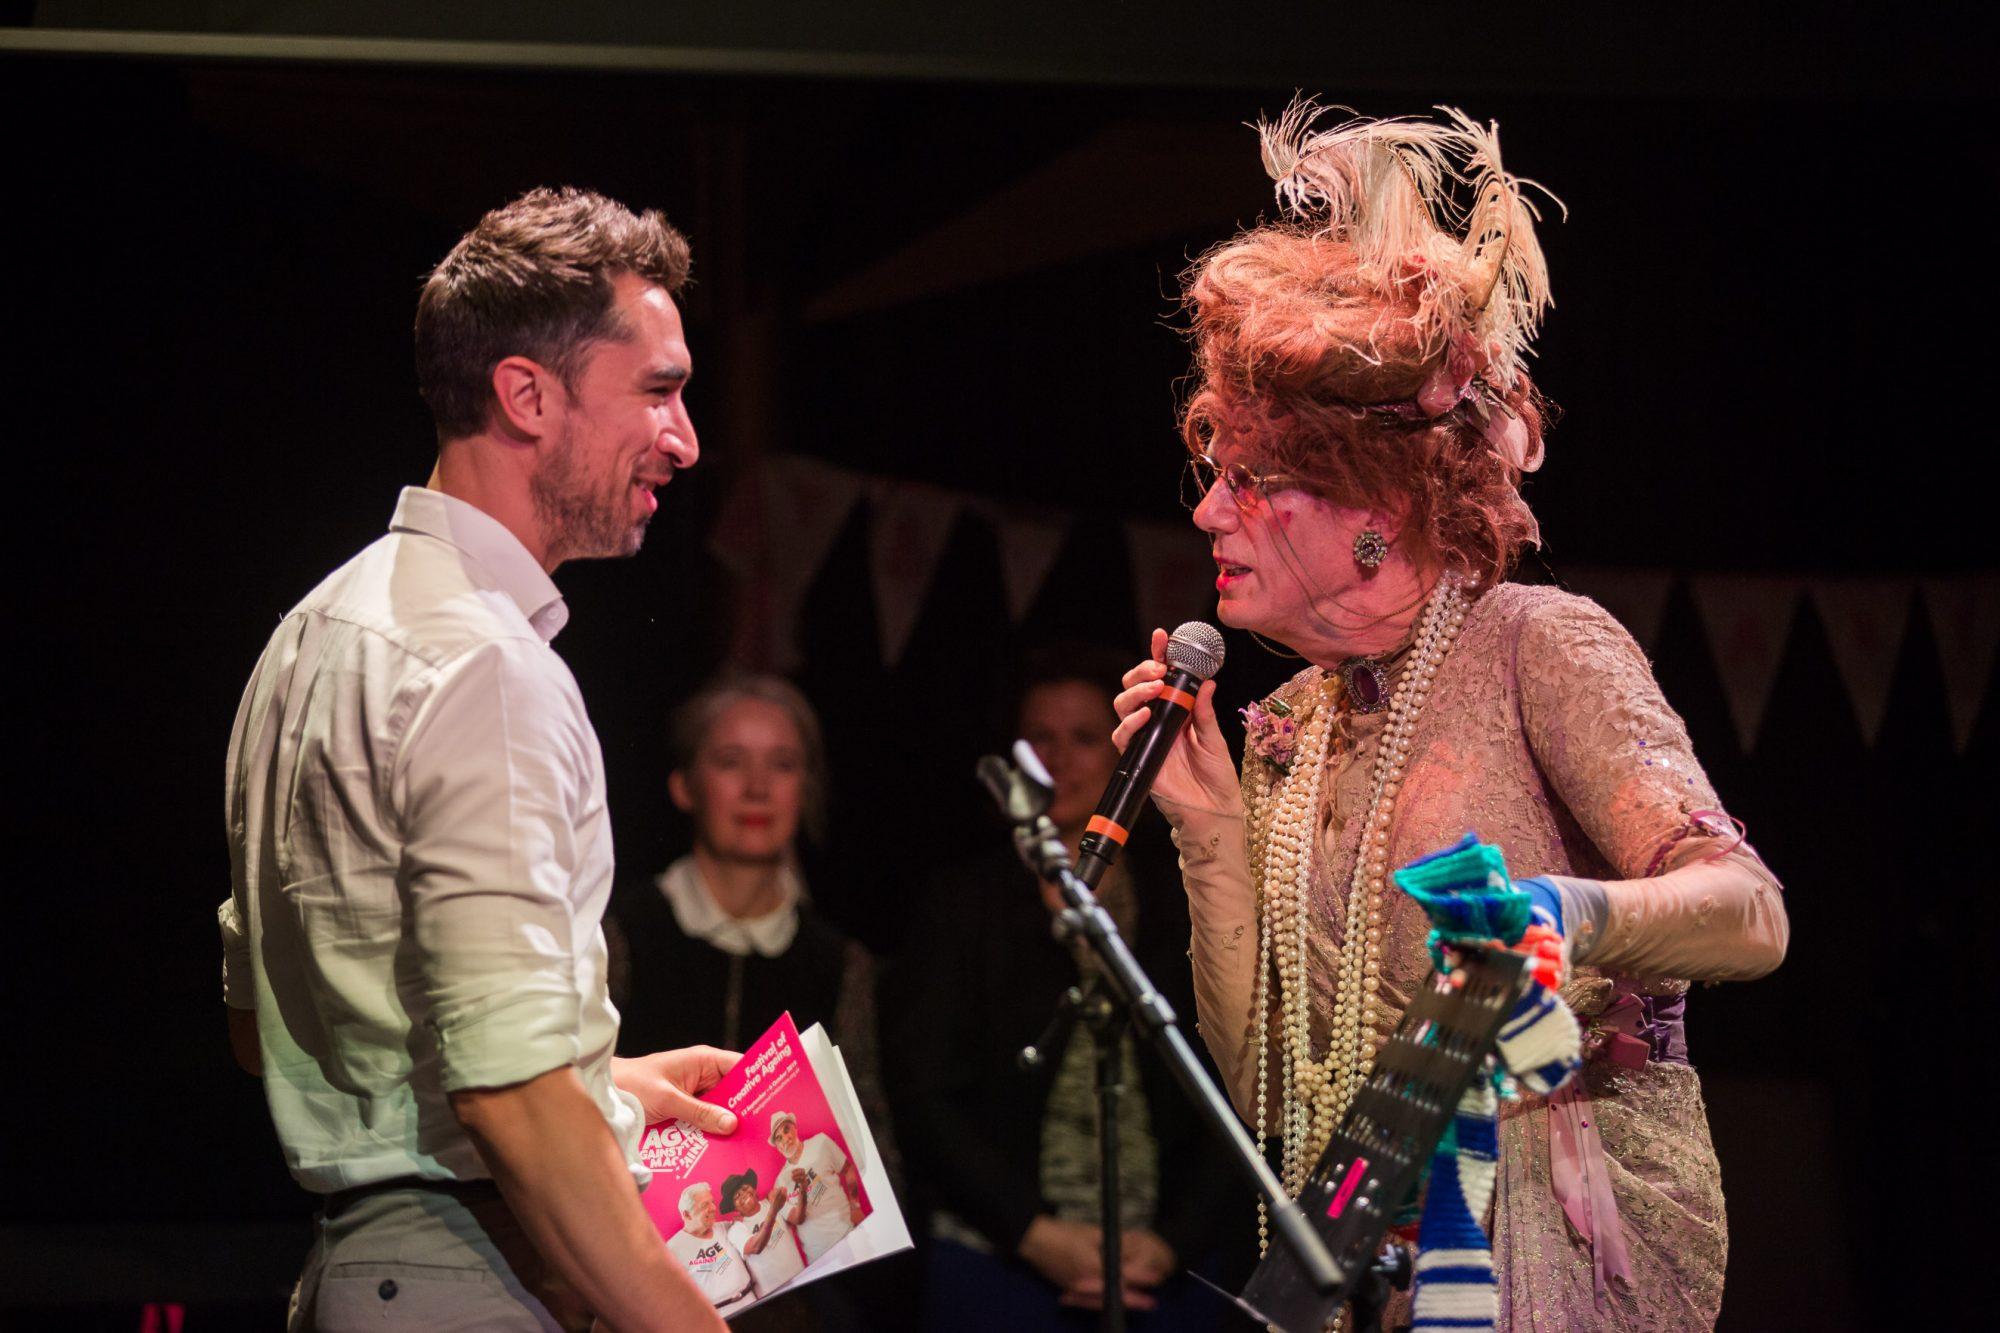 man dressed as woman talking to a man on stage